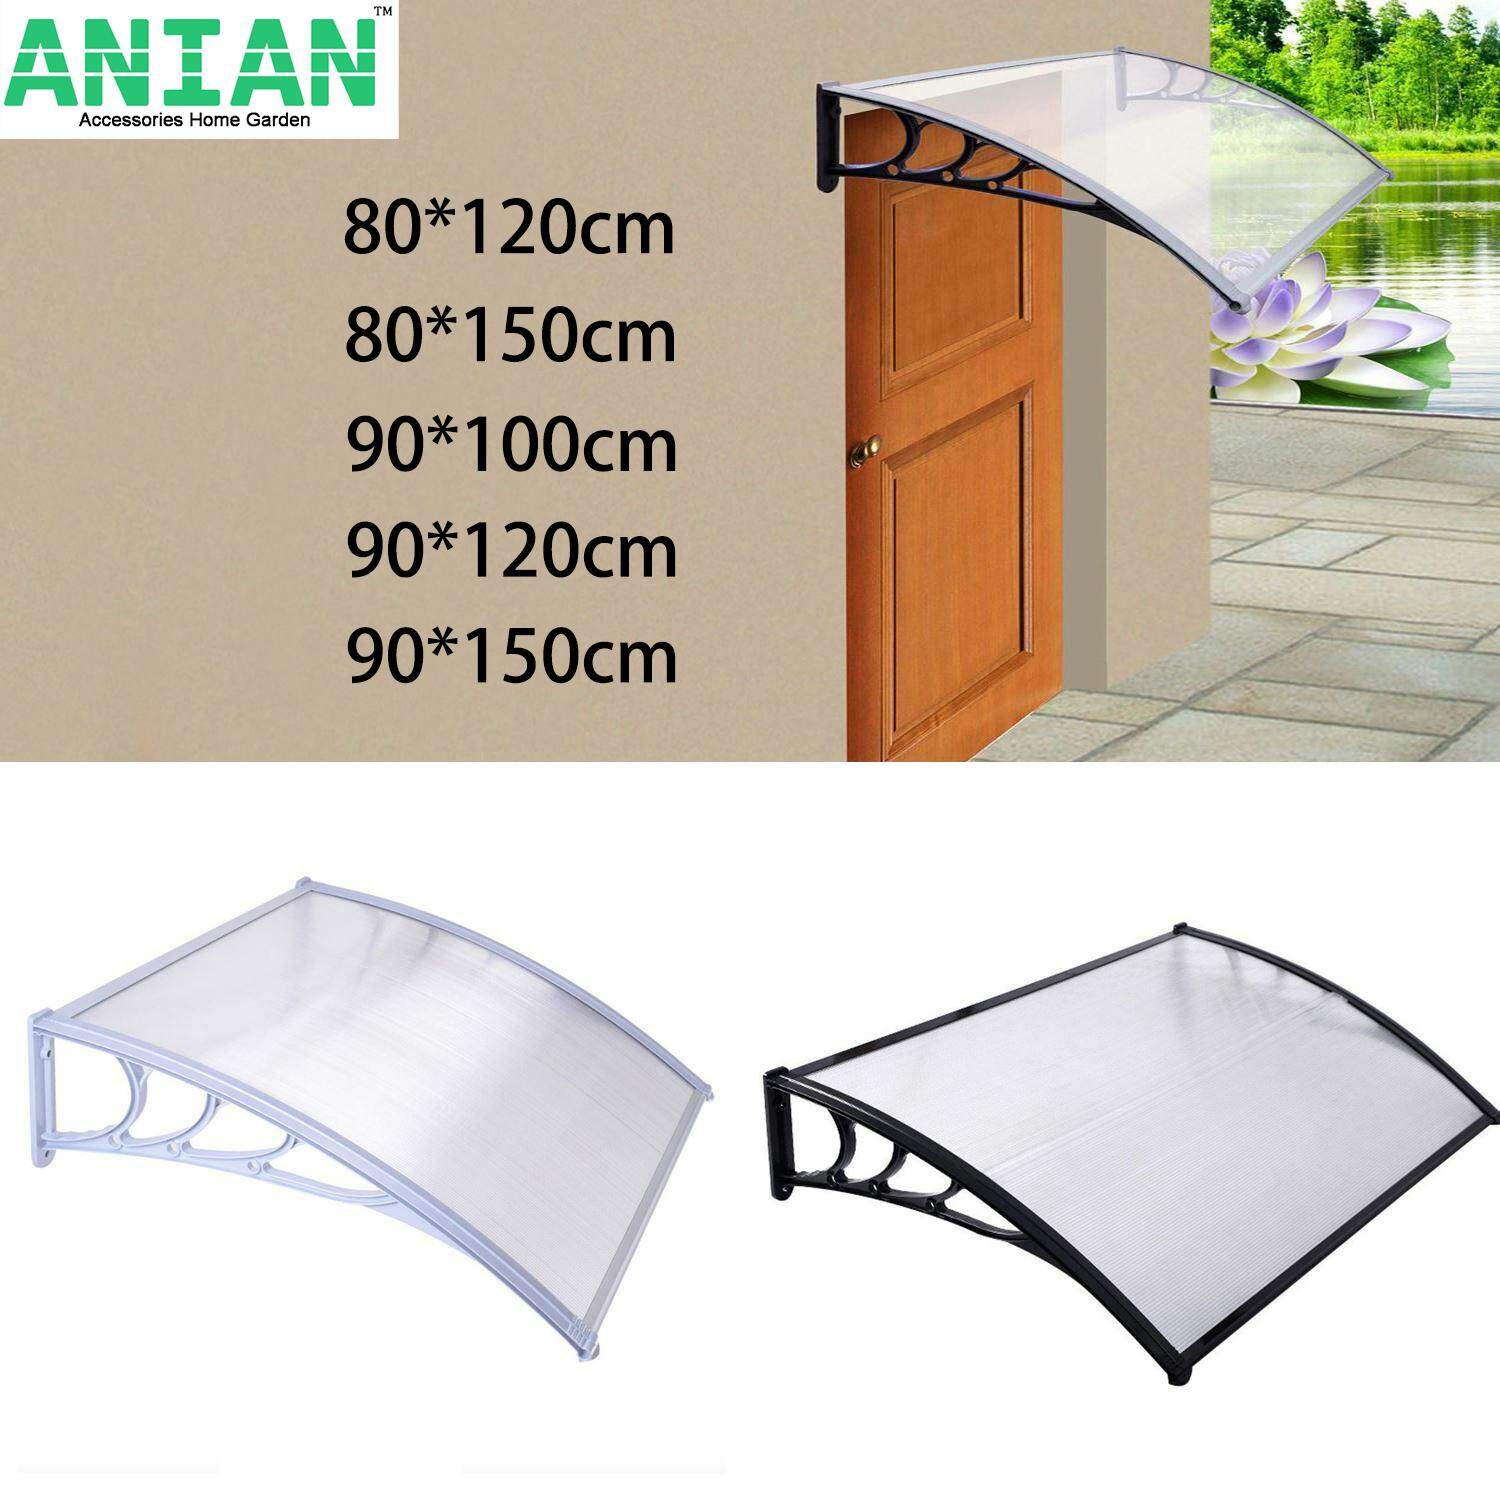 c3b1a5bb7e ANIAN New Door Canopy Awning Rain Shelter Front Back Porch Outdoor Shade  Patio Roof